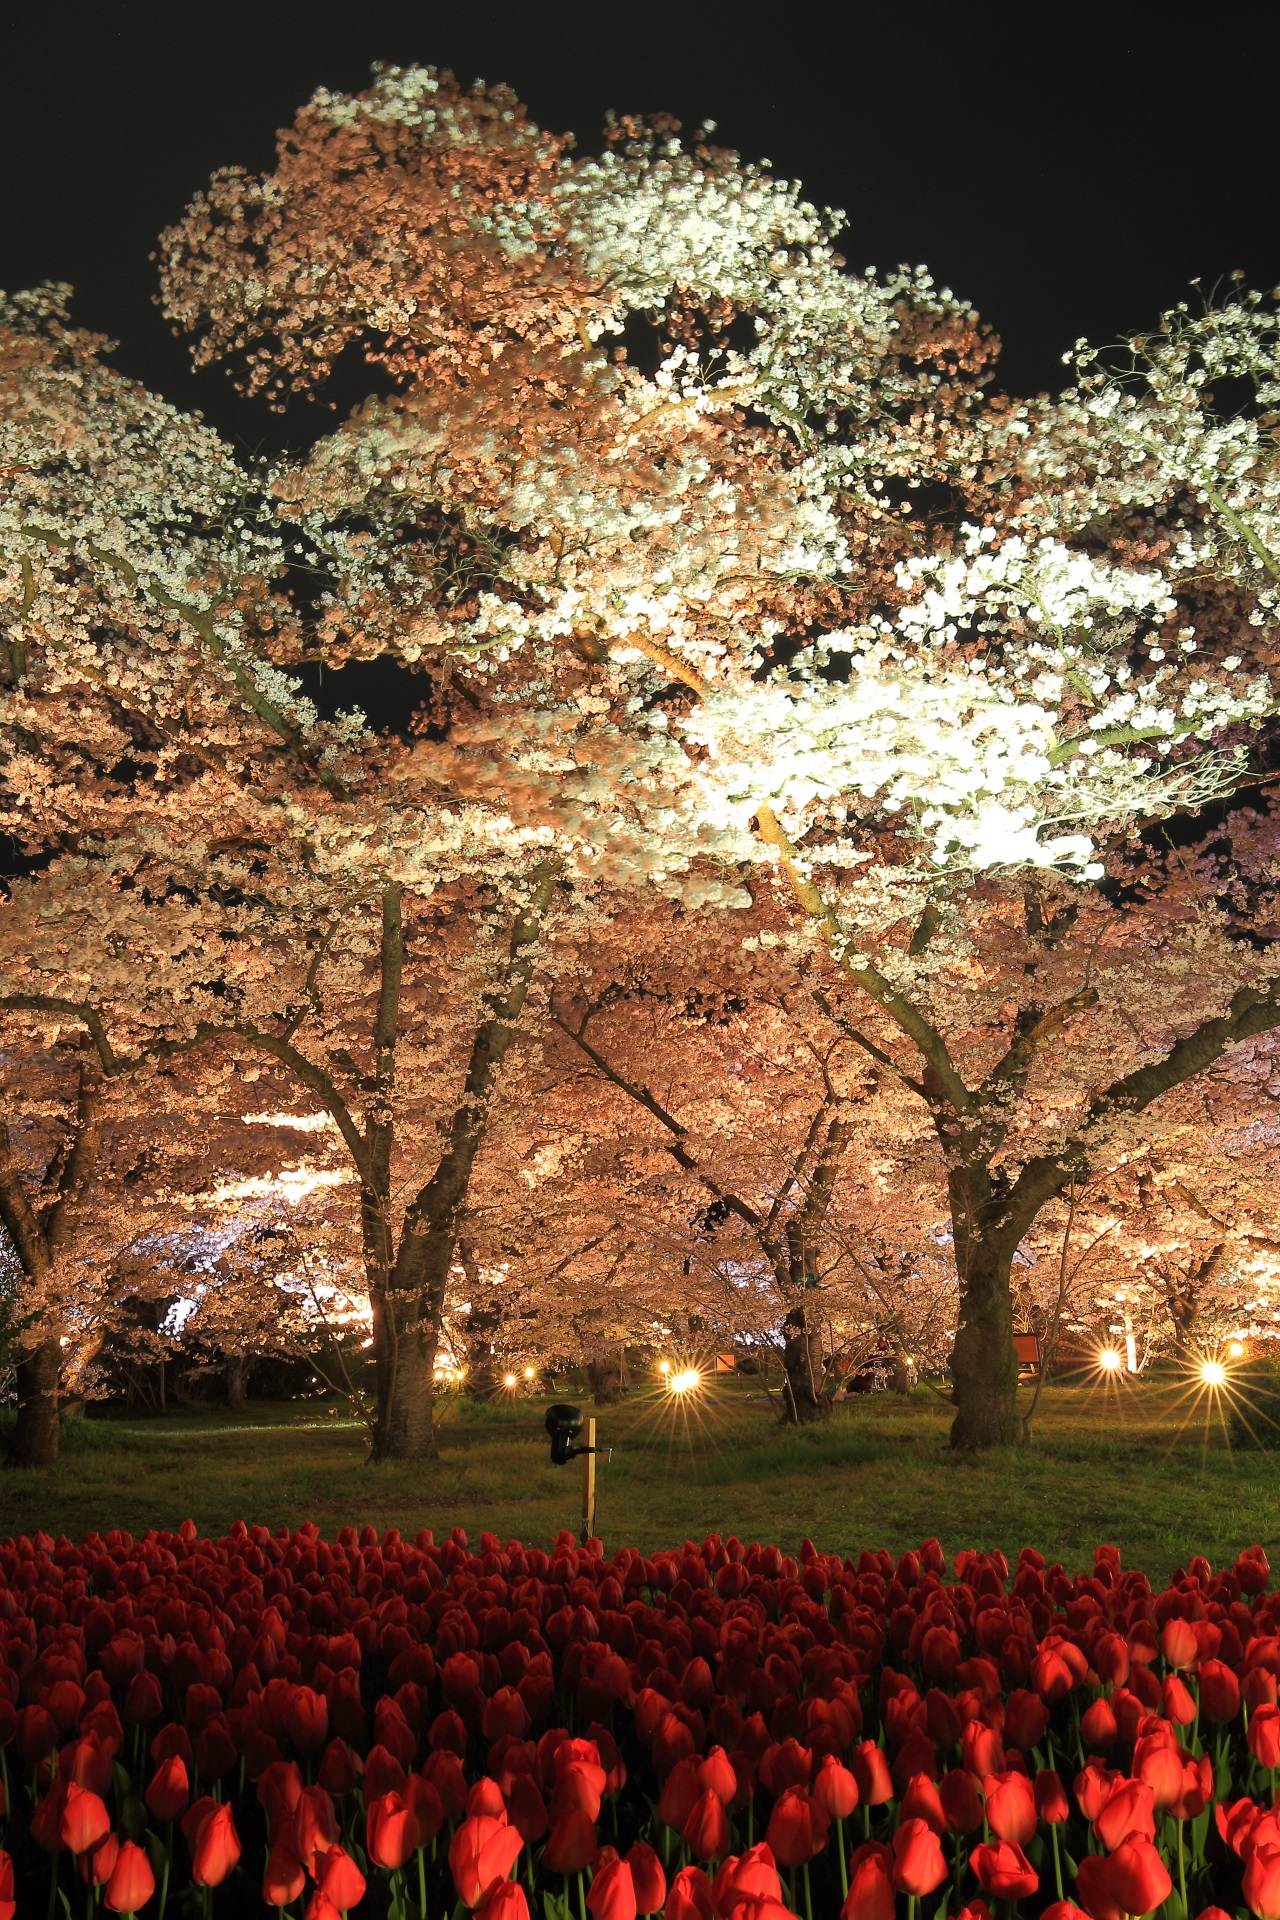 Kyoto Prefectural Botanical Garden cherryblossoms lightup